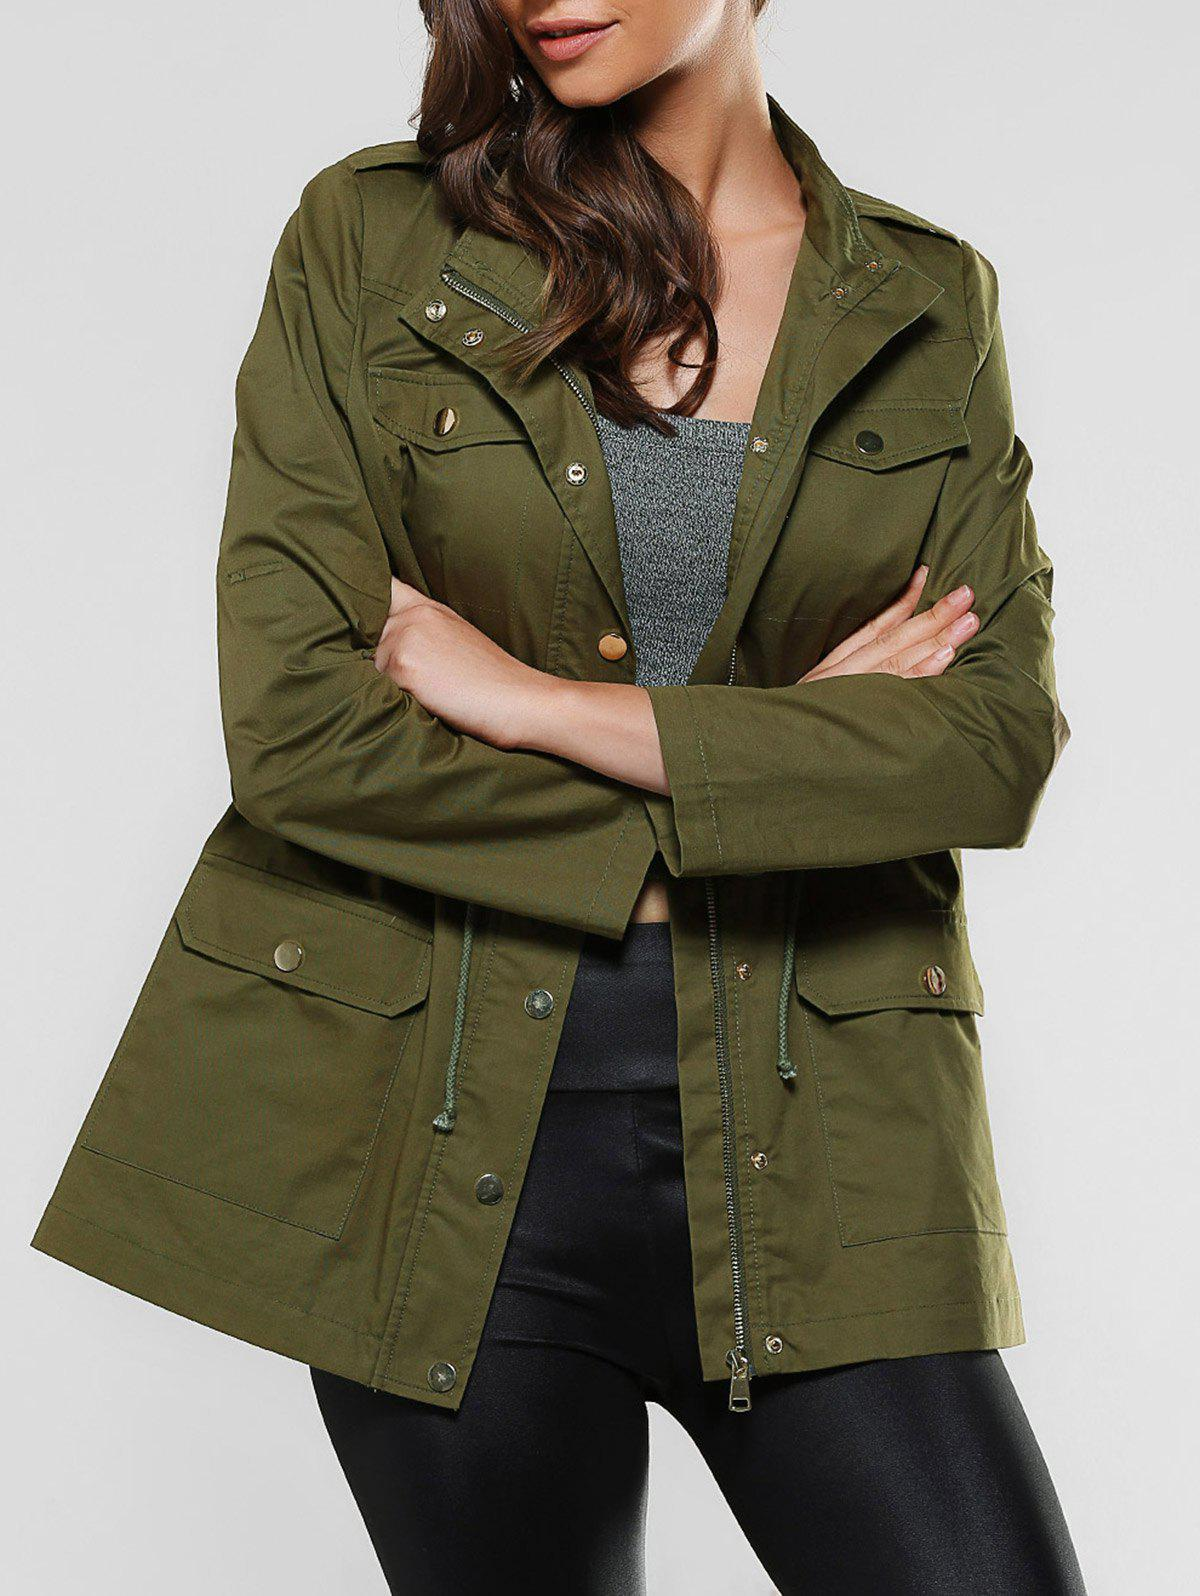 Flap Pockets Drawstring Utility JacketWomen<br><br><br>Size: M<br>Color: ARMY GREEN